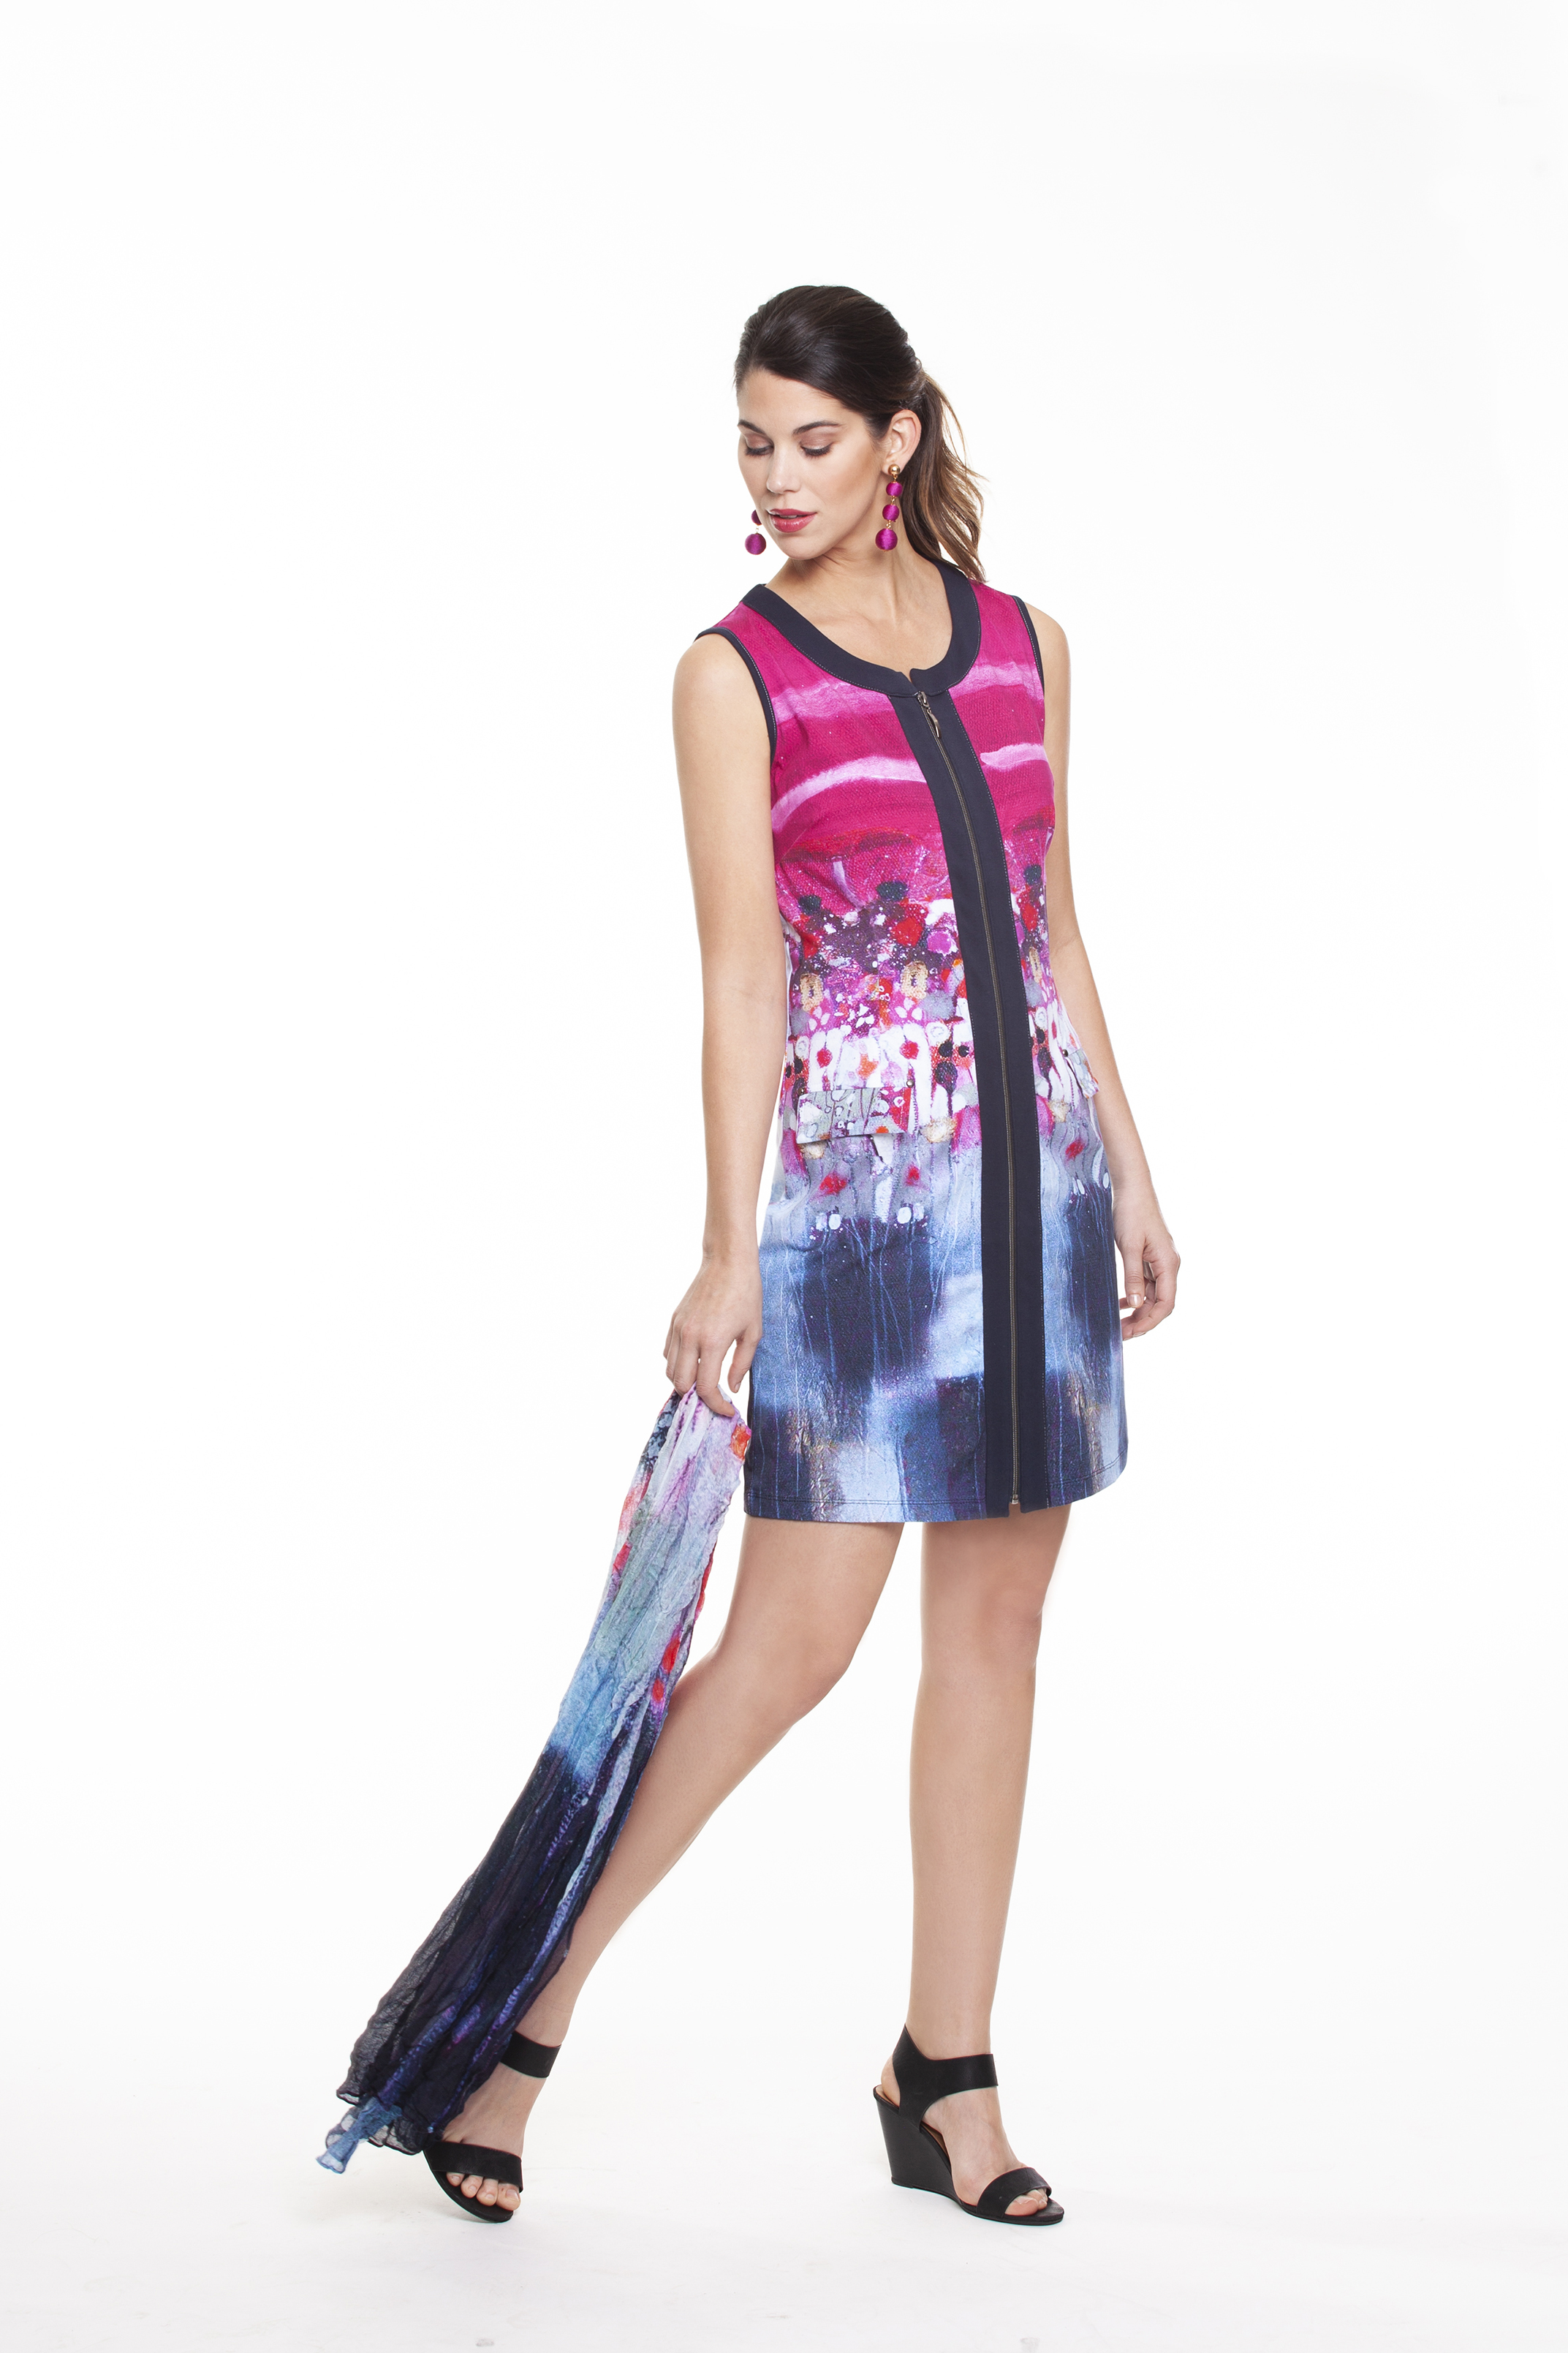 Simply Art Dolcezza: Fuschia Candy Storm Abstract Art Zip Dress SOLD OUT